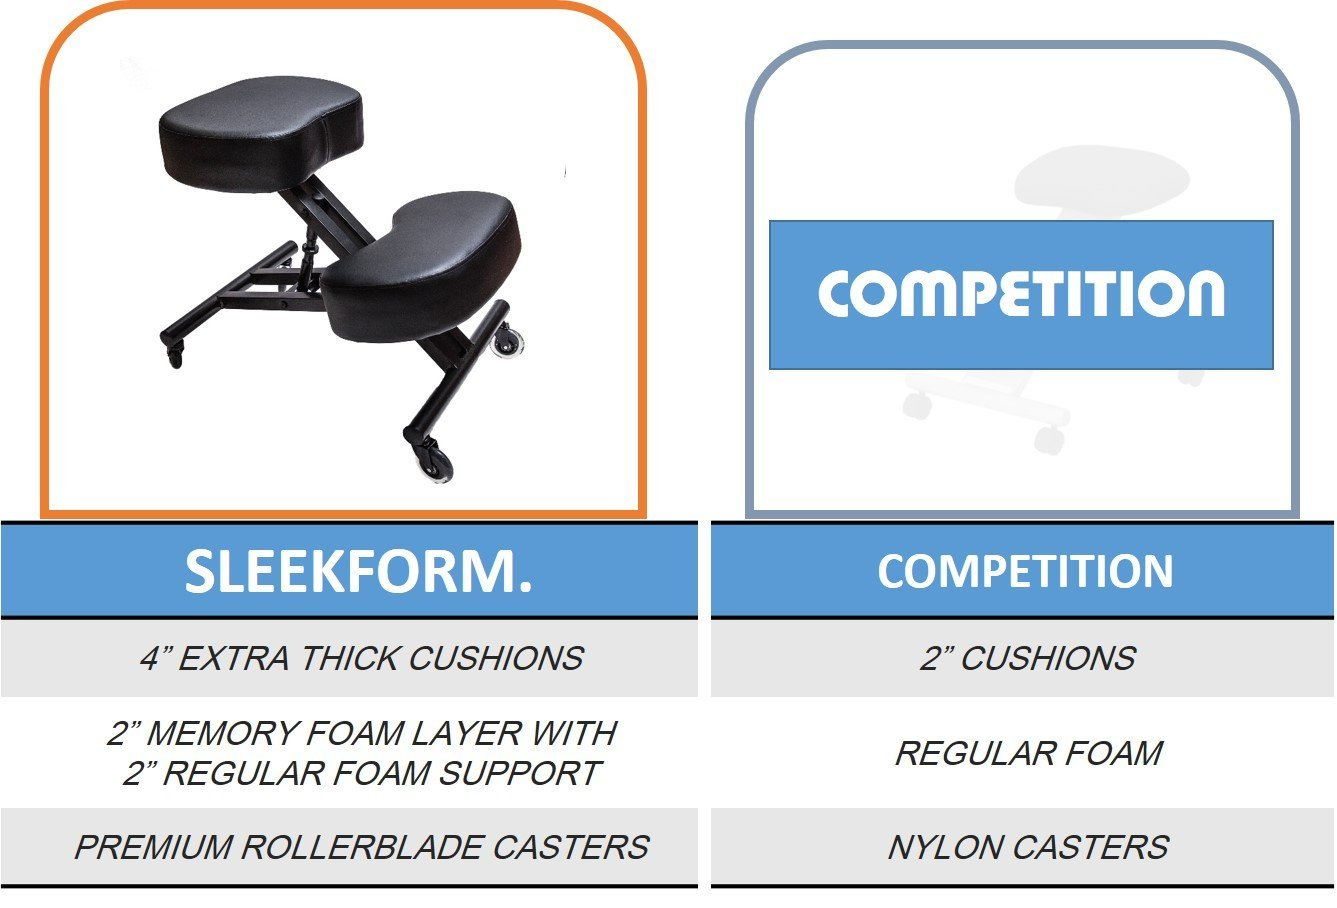 Sleekform Ergonomic Kneeling Chair M2 (Memory/Regular Foam), Adjustable Stool for Home, Office, and Meditation - Rollerblade Casters by Sleekform (Image #3)